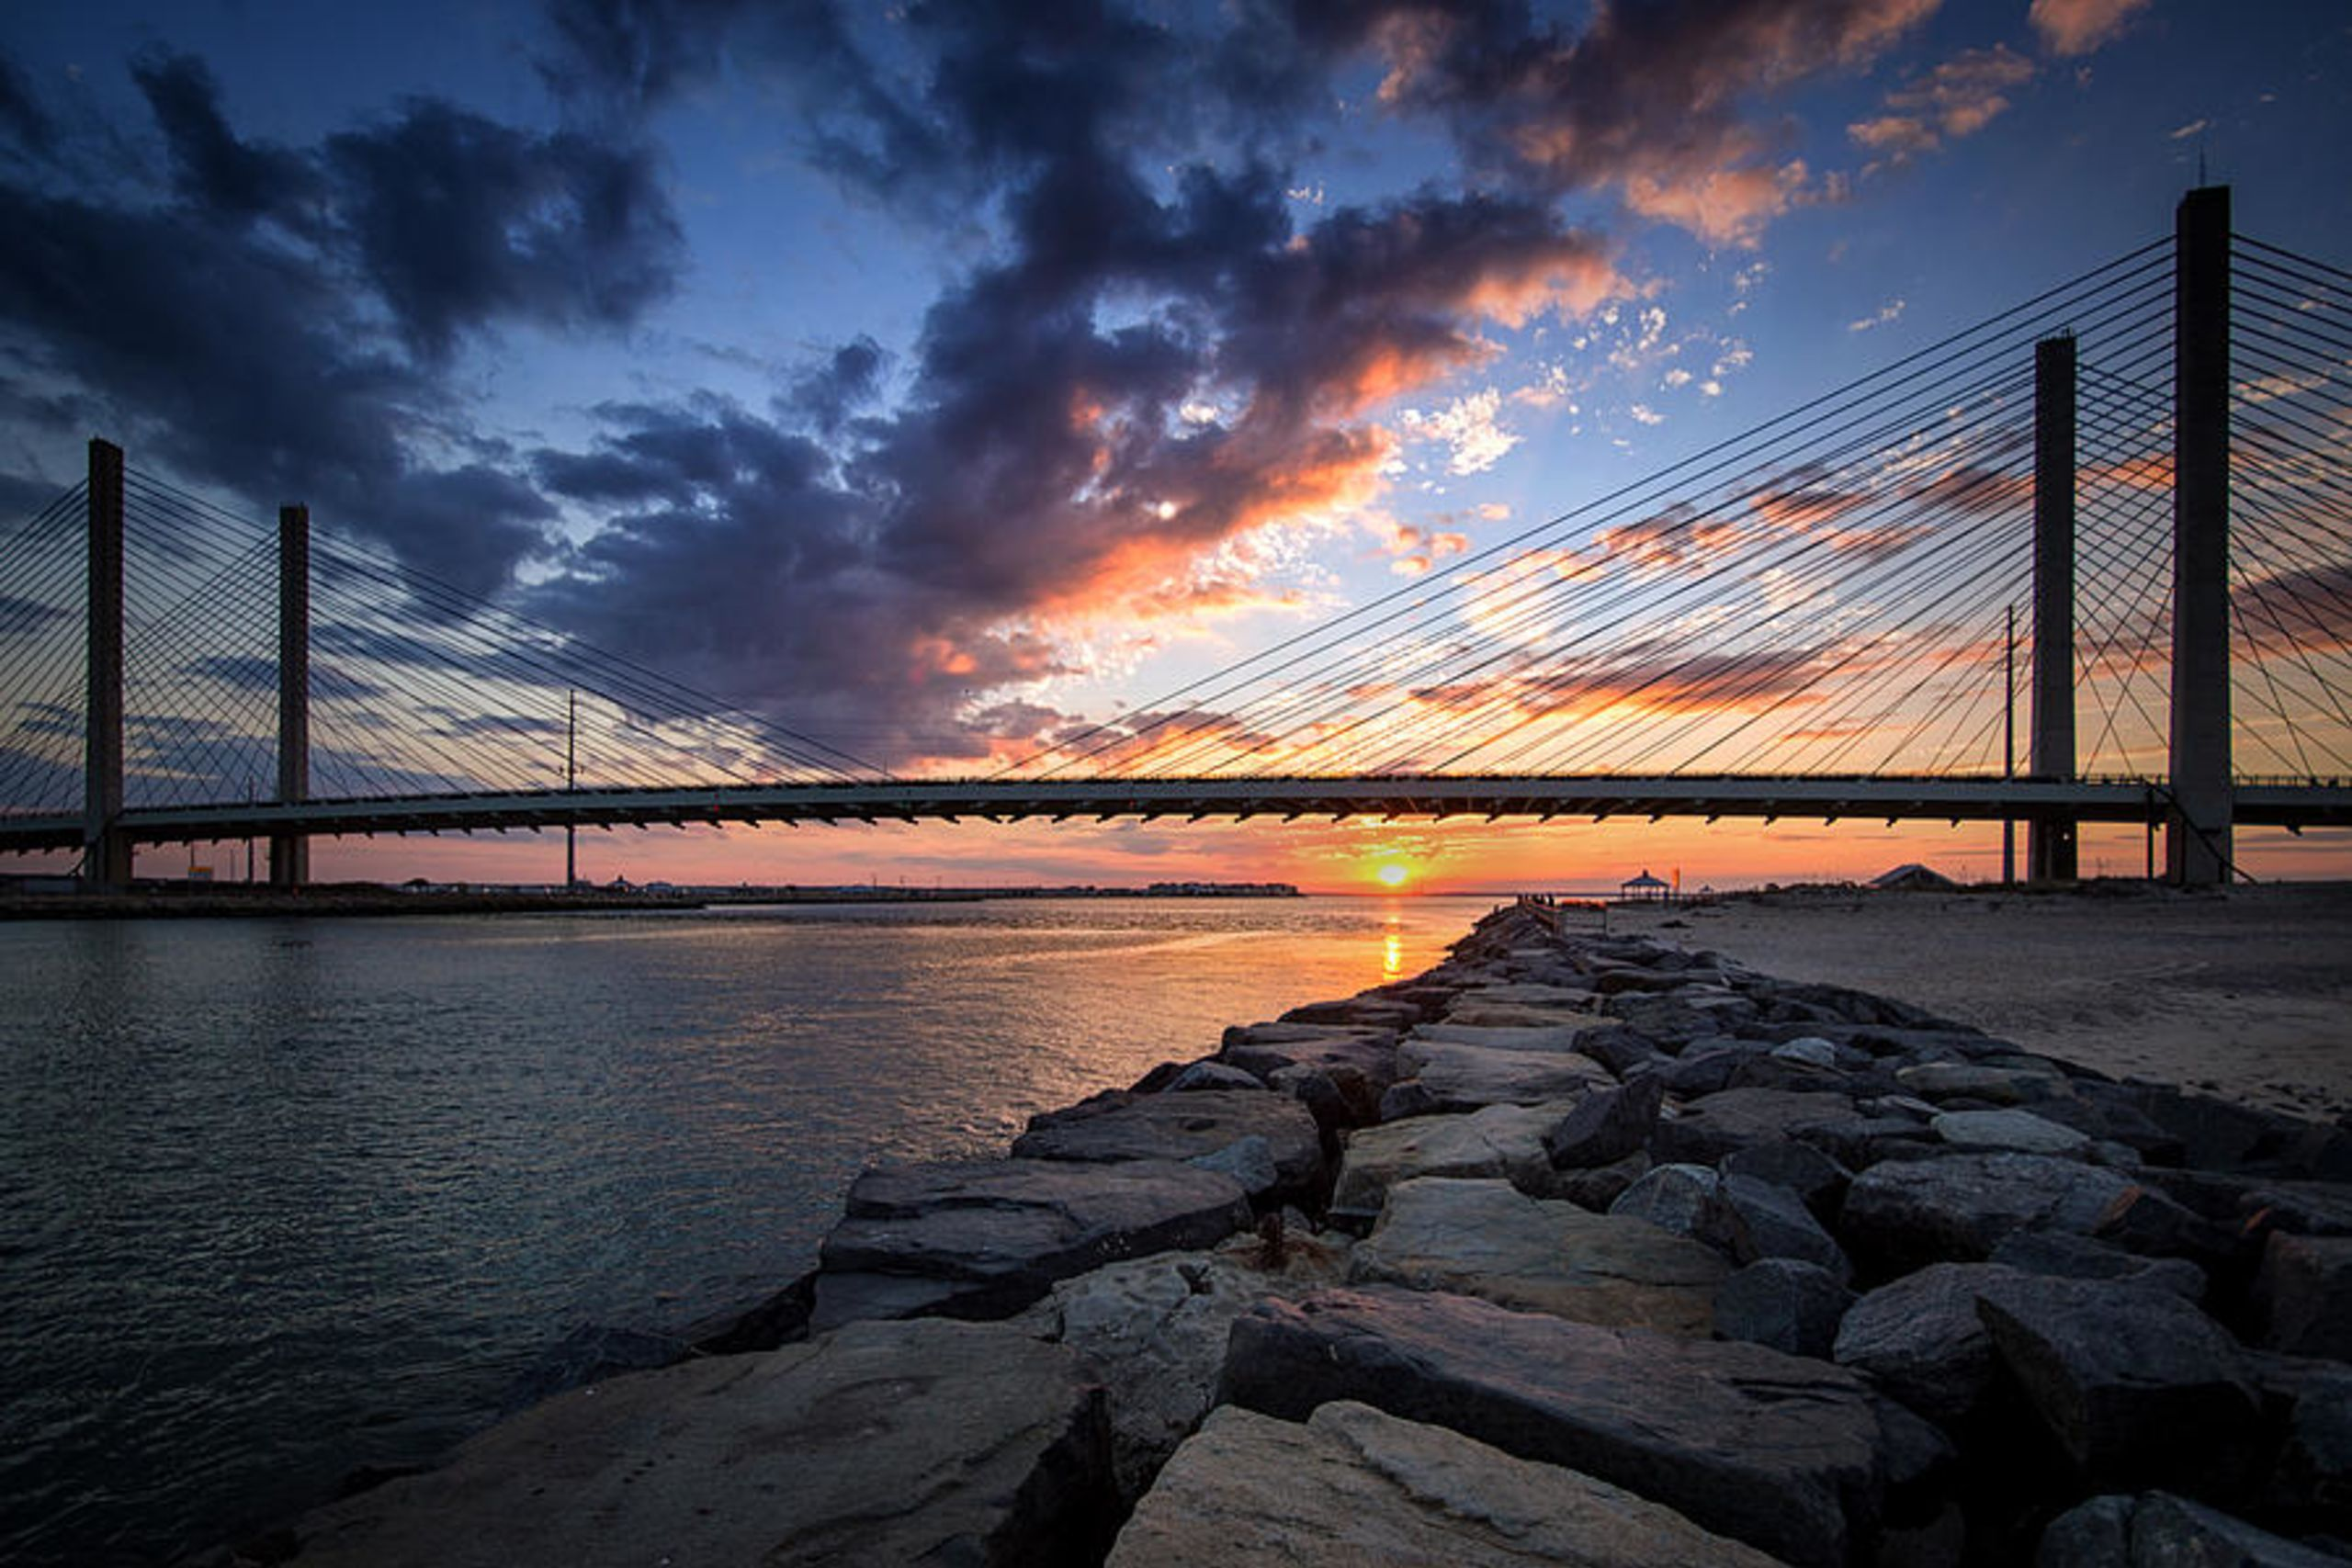 Indian River Inlet at Sunset